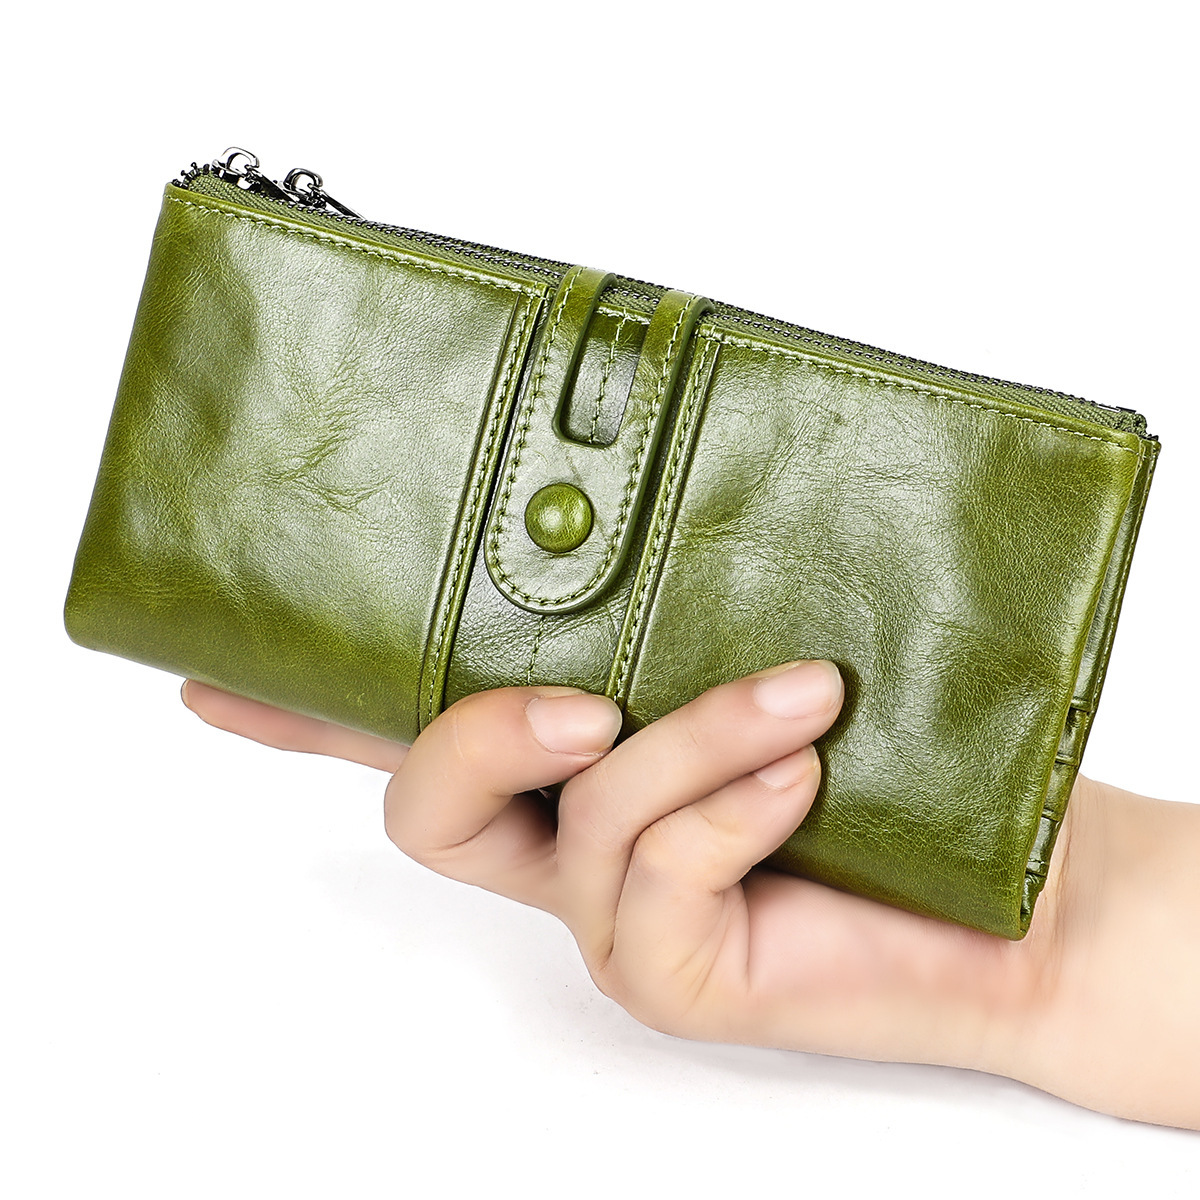 New Genuine Leather Wallet Women Handmade Vintage Luxury Brand Cartera Mujer Ladies Leather Wallets Long Rfid Wallet Protection in Wallets from Luggage Bags